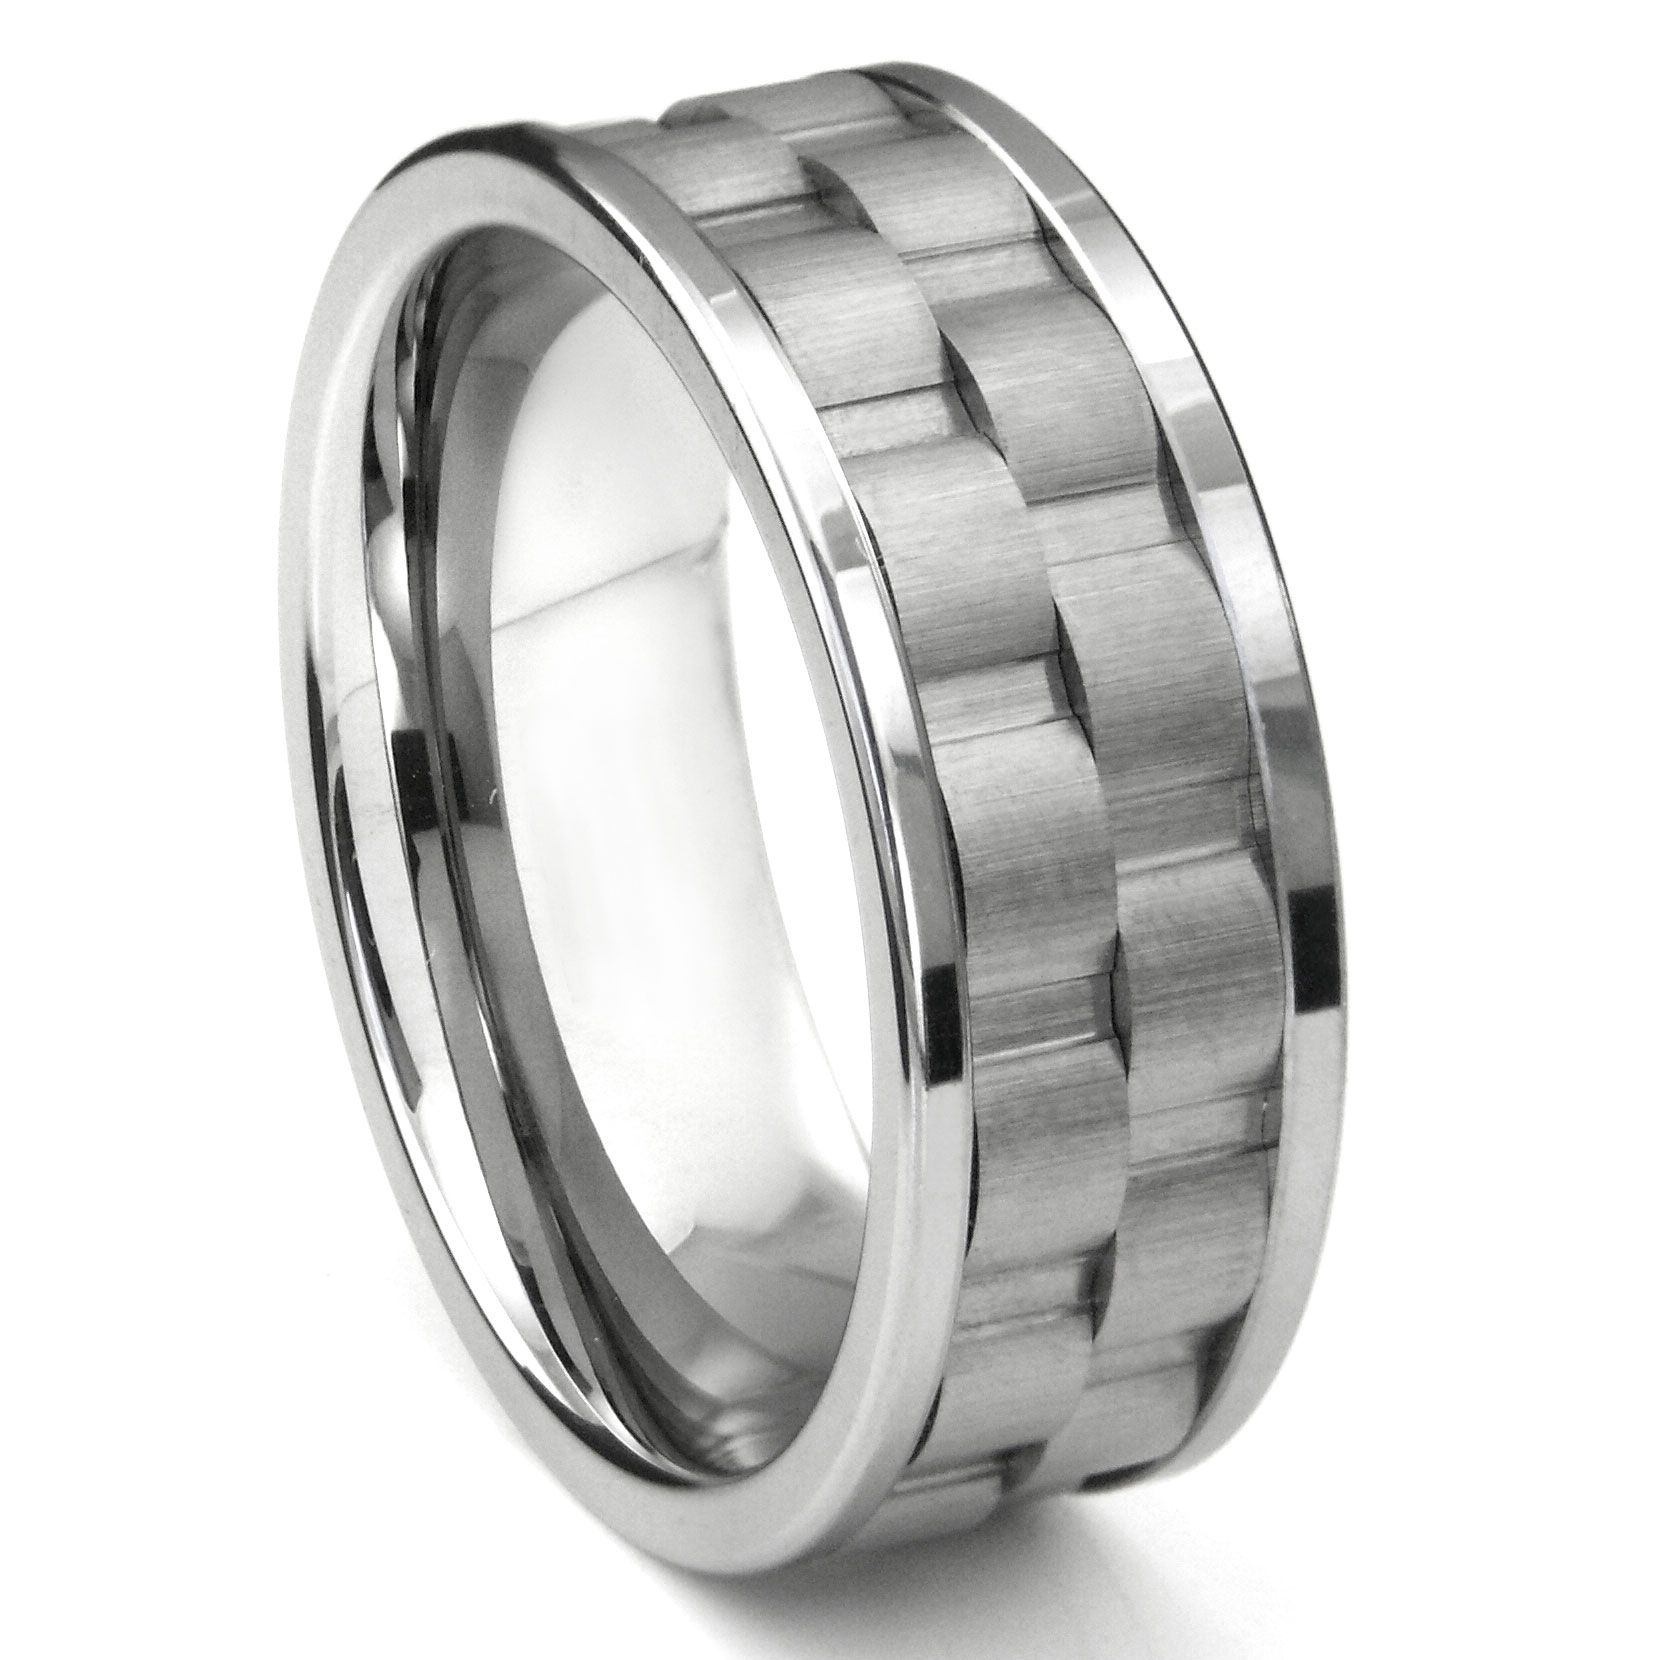 Wedding Band Ring Tungsten Carbide 8mm Brushed Dome Wedding Band Ring